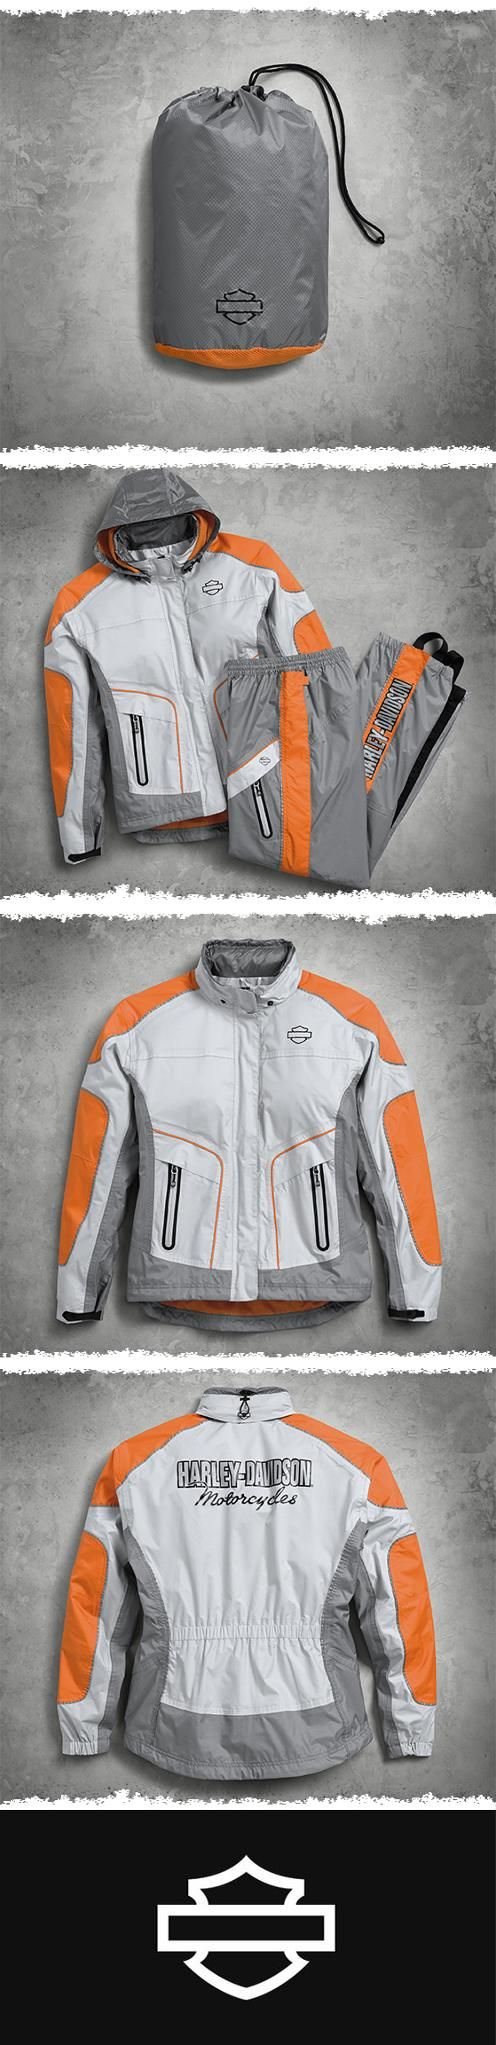 Whether it's a mist or monsoon, this mesh-lined rain suit meets our extremely high standards for being waterproof and breathable. | Harley-Davidson Women's Midpoint Colorblock Rain Suit